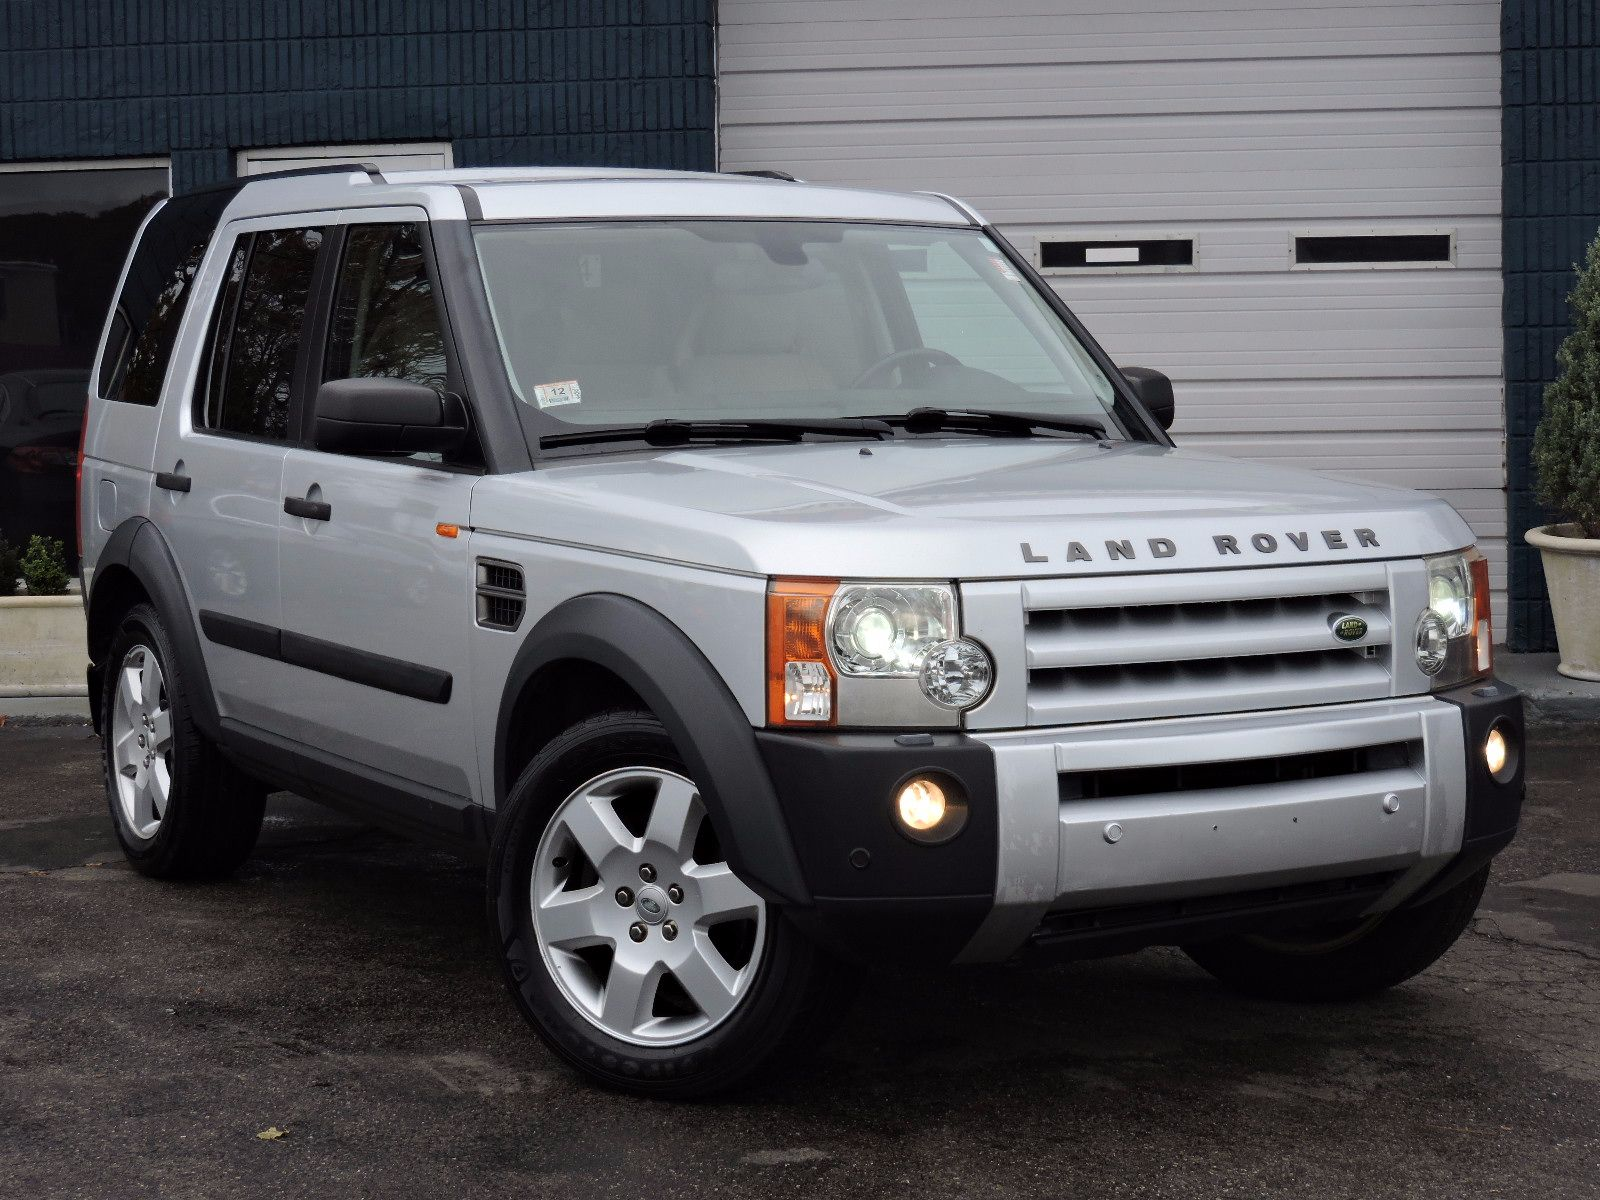 tm ml used rover sale mk on buysellsearch for land vehicles in cars georgia se landrover